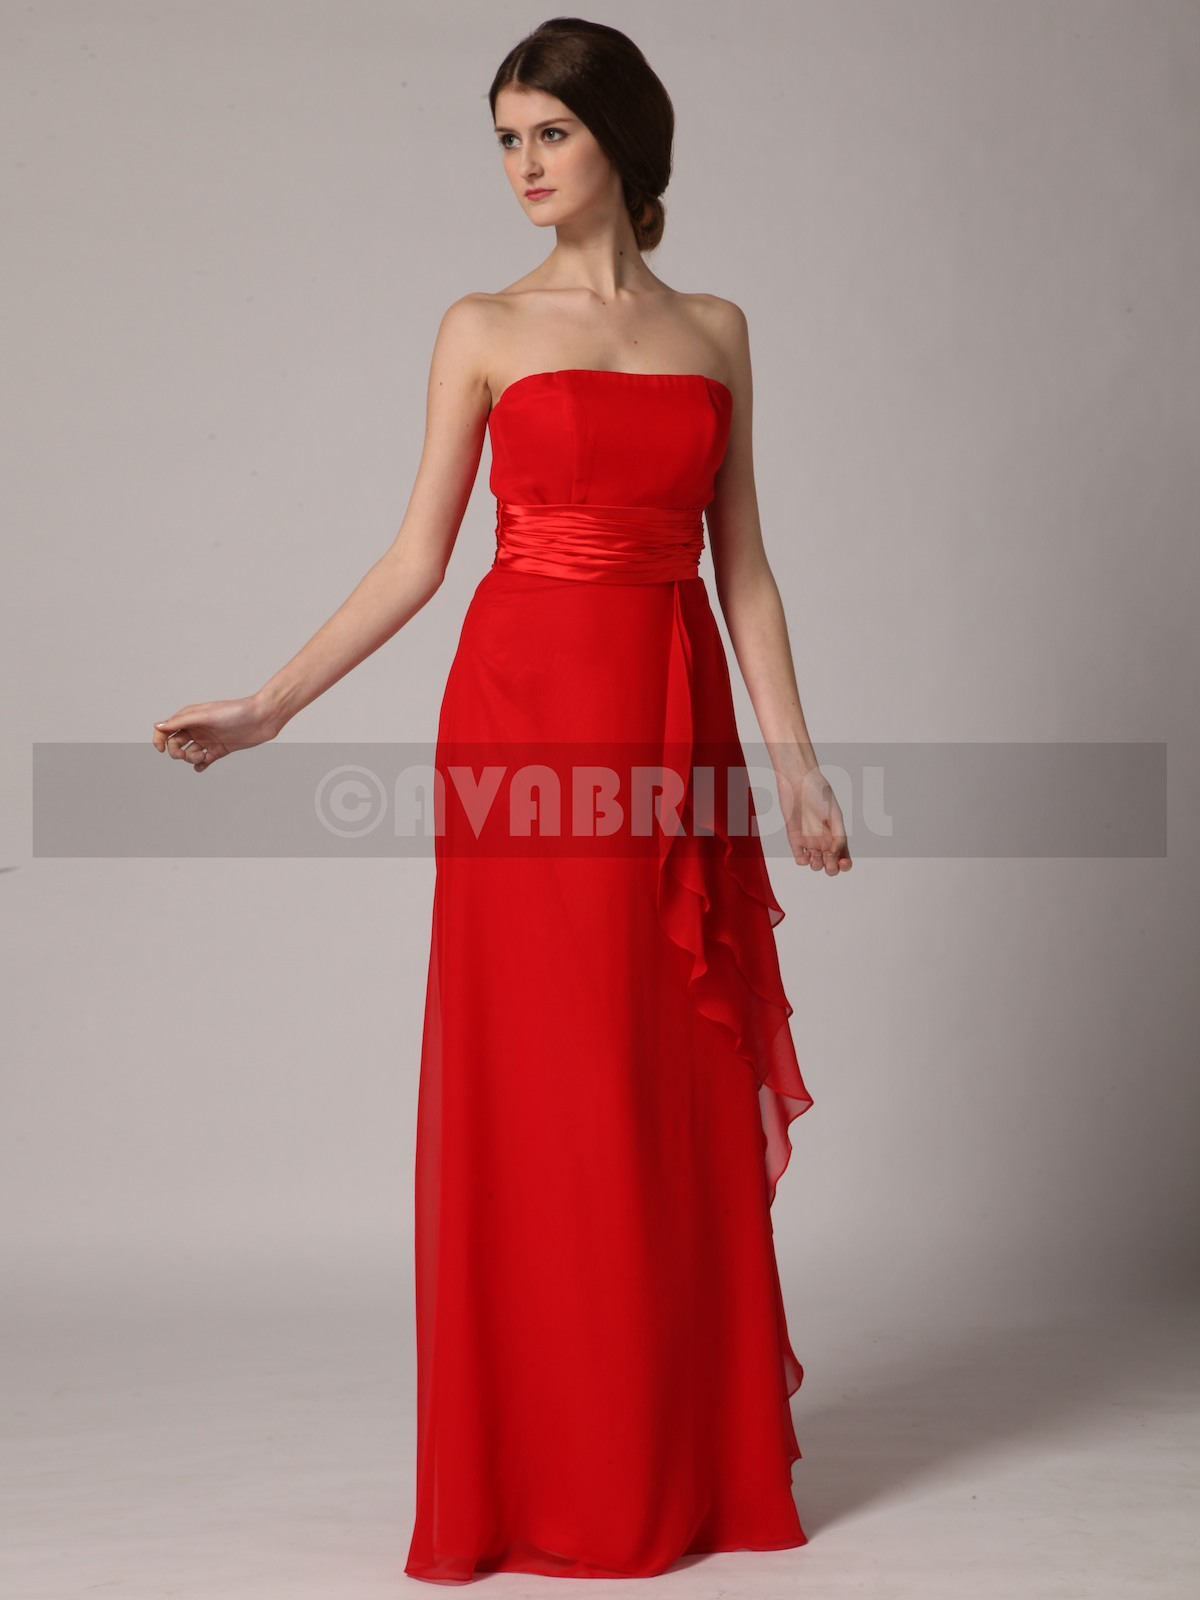 Simple Straight Chiffon Bridesmaid Dress B438-Front